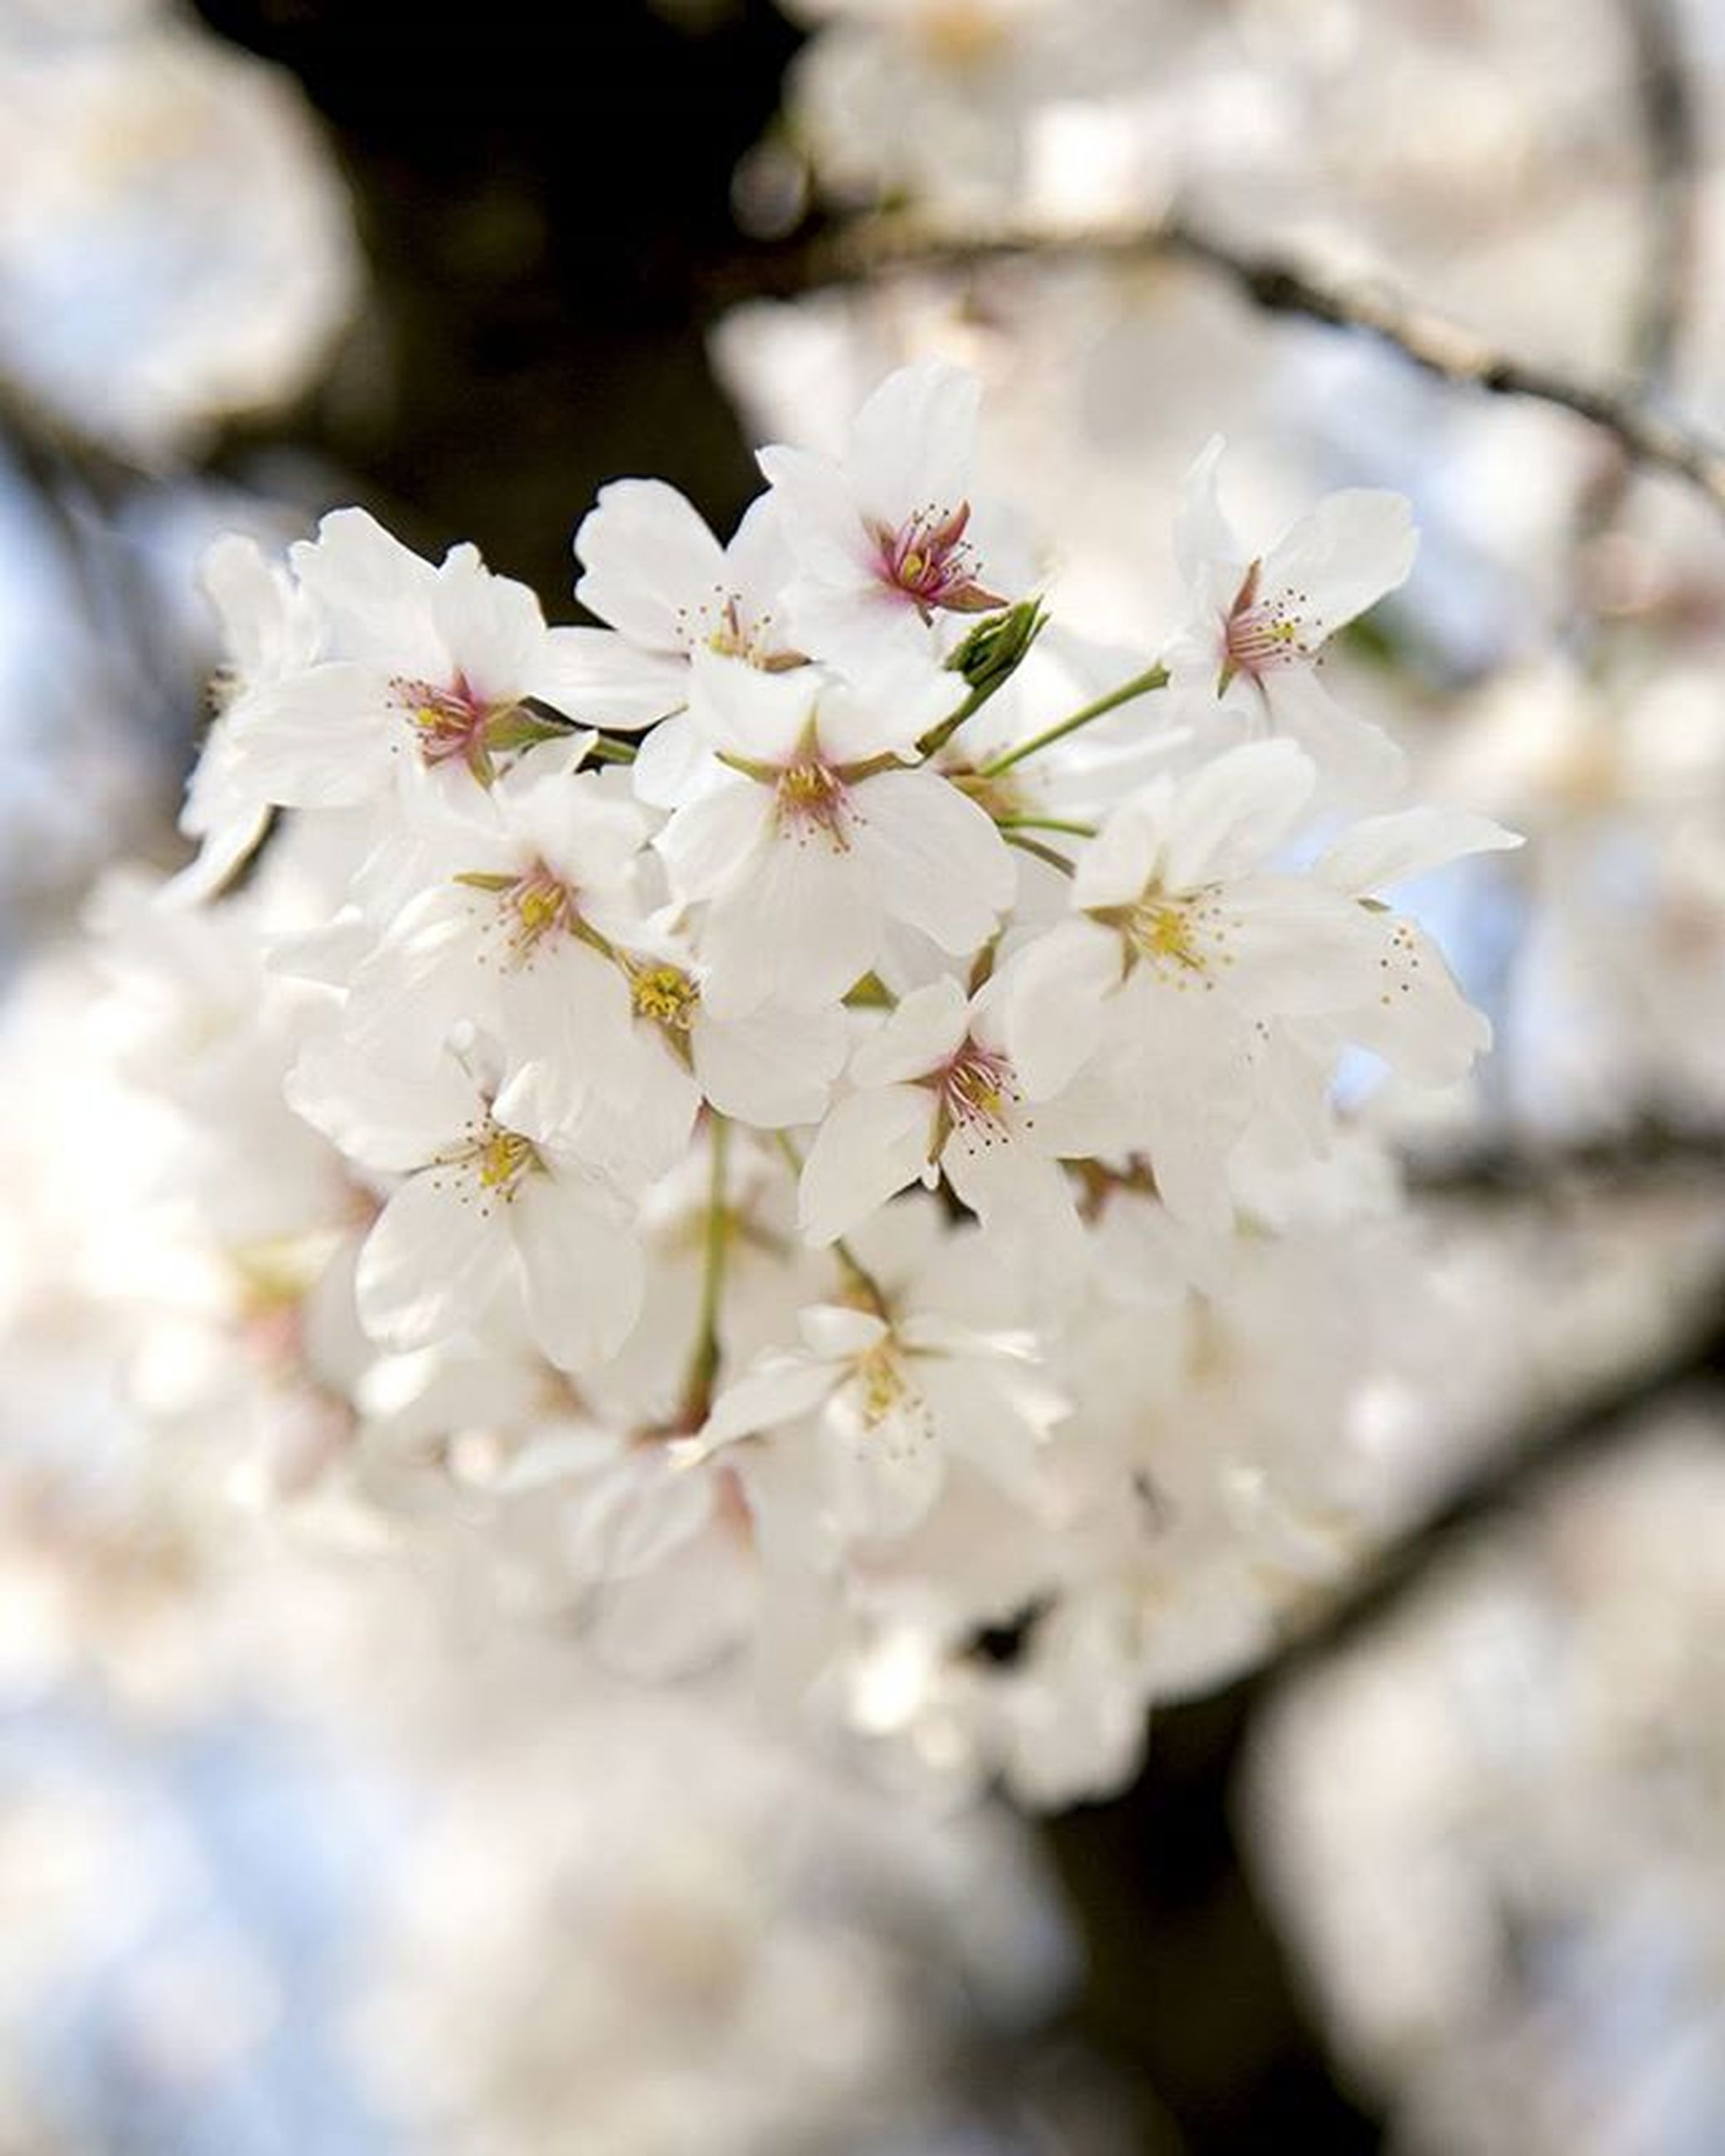 flower, freshness, growth, fragility, white color, petal, beauty in nature, close-up, nature, focus on foreground, flower head, blossom, cherry blossom, tree, selective focus, blooming, in bloom, branch, white, stamen